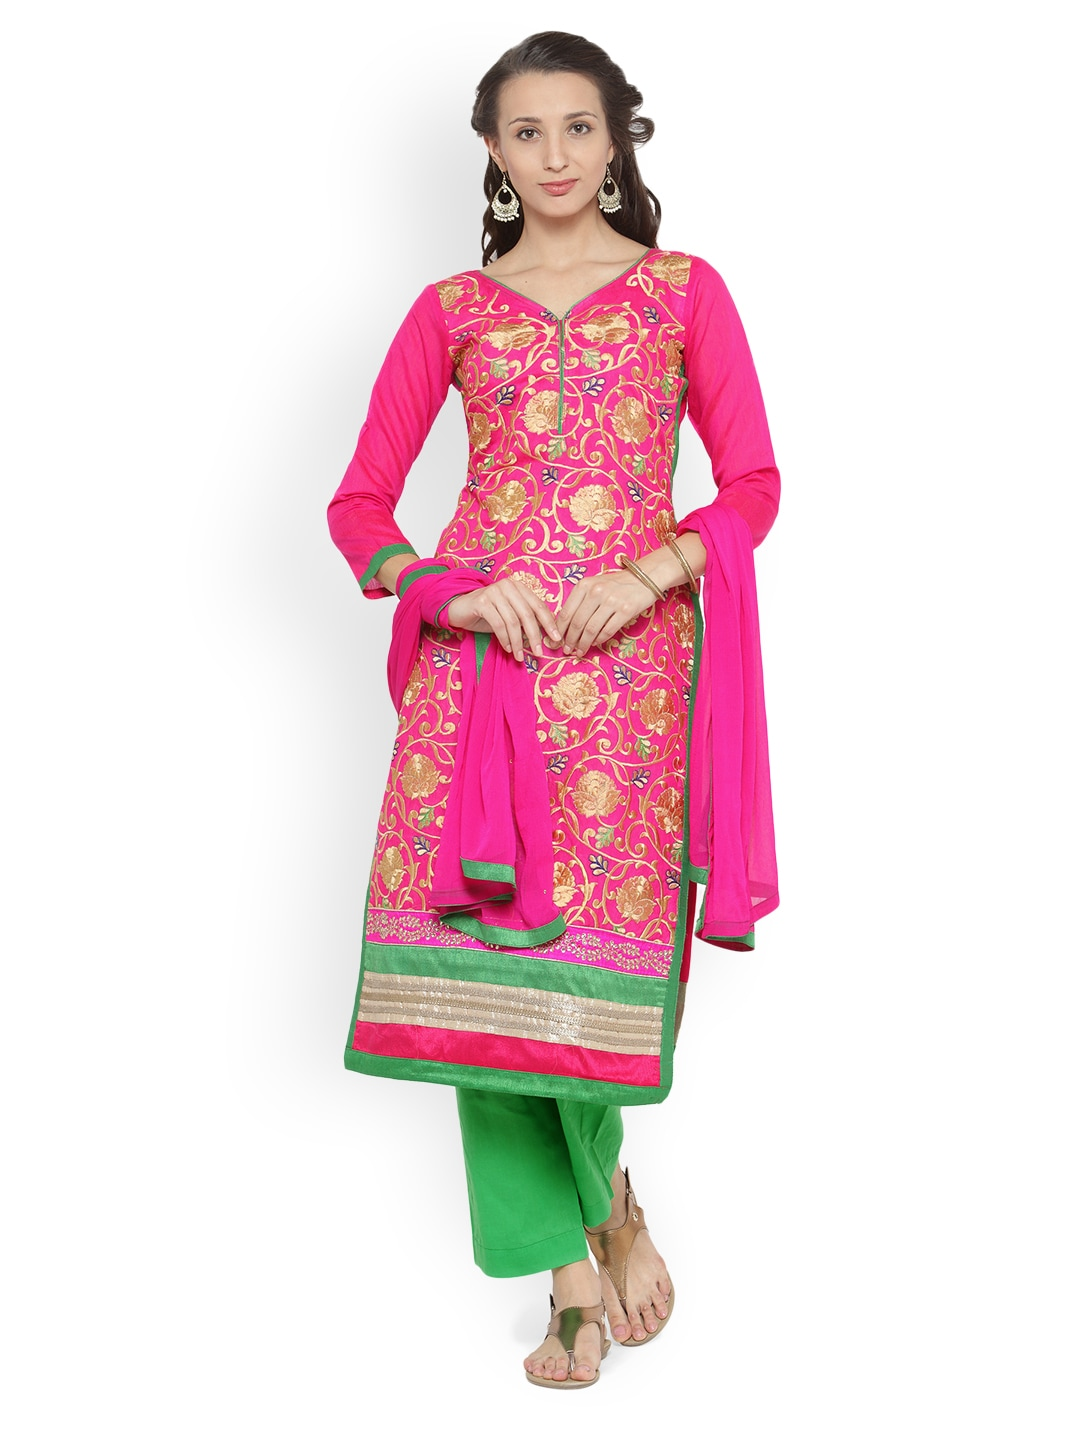 Chhabra 555 Pink & Green Cotton Blend Unstitched Dress Material image